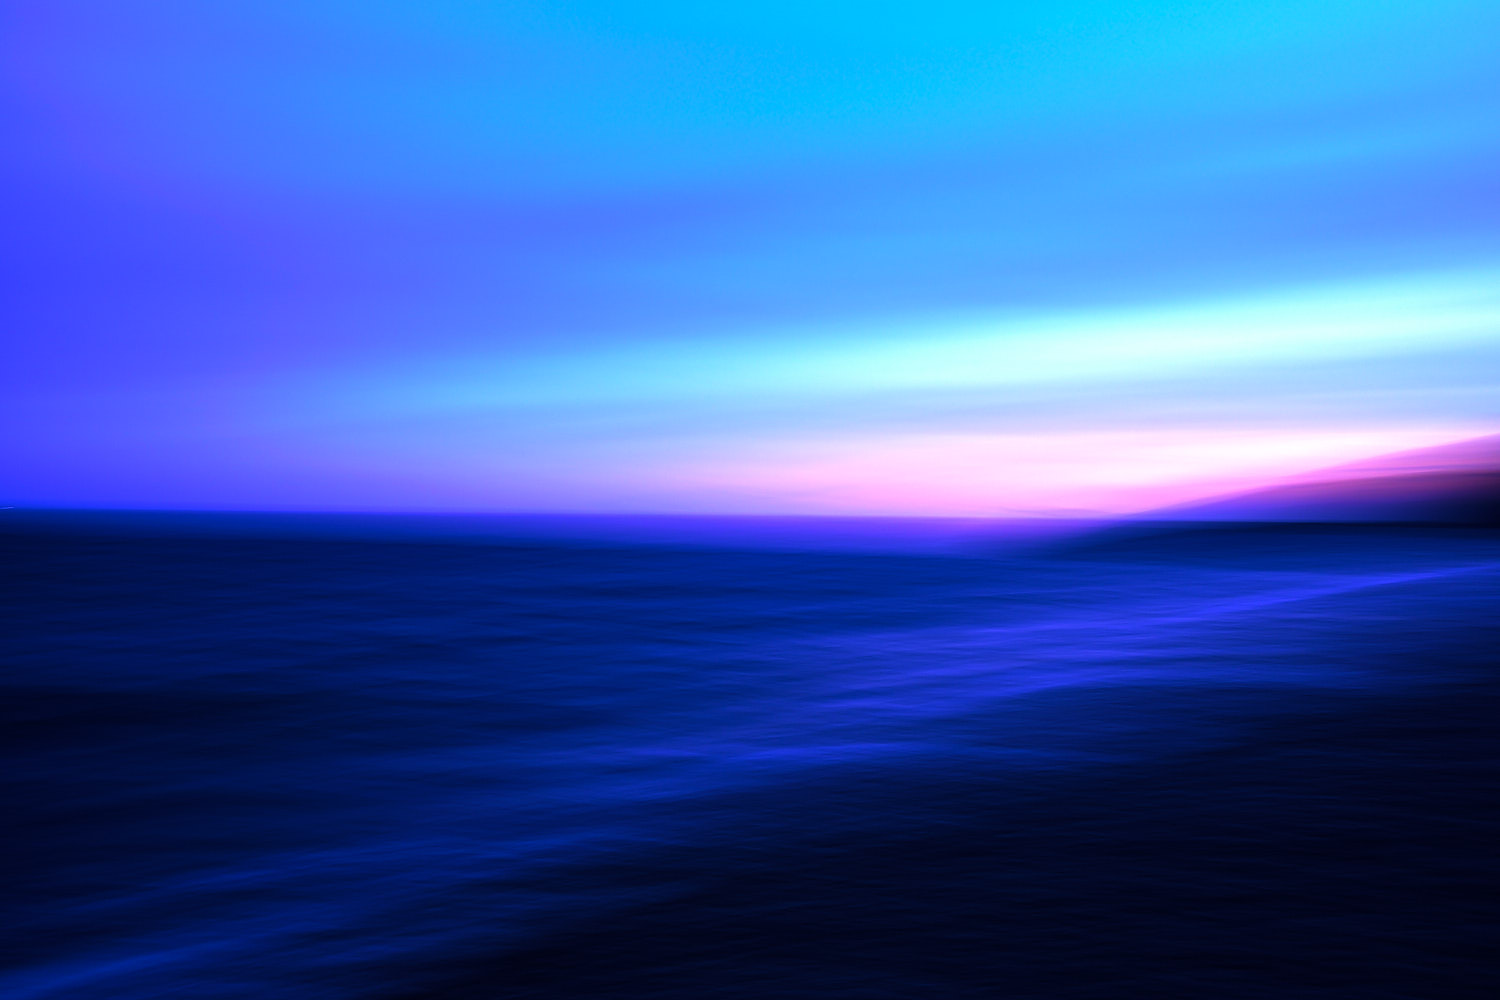 Blurry Seascape